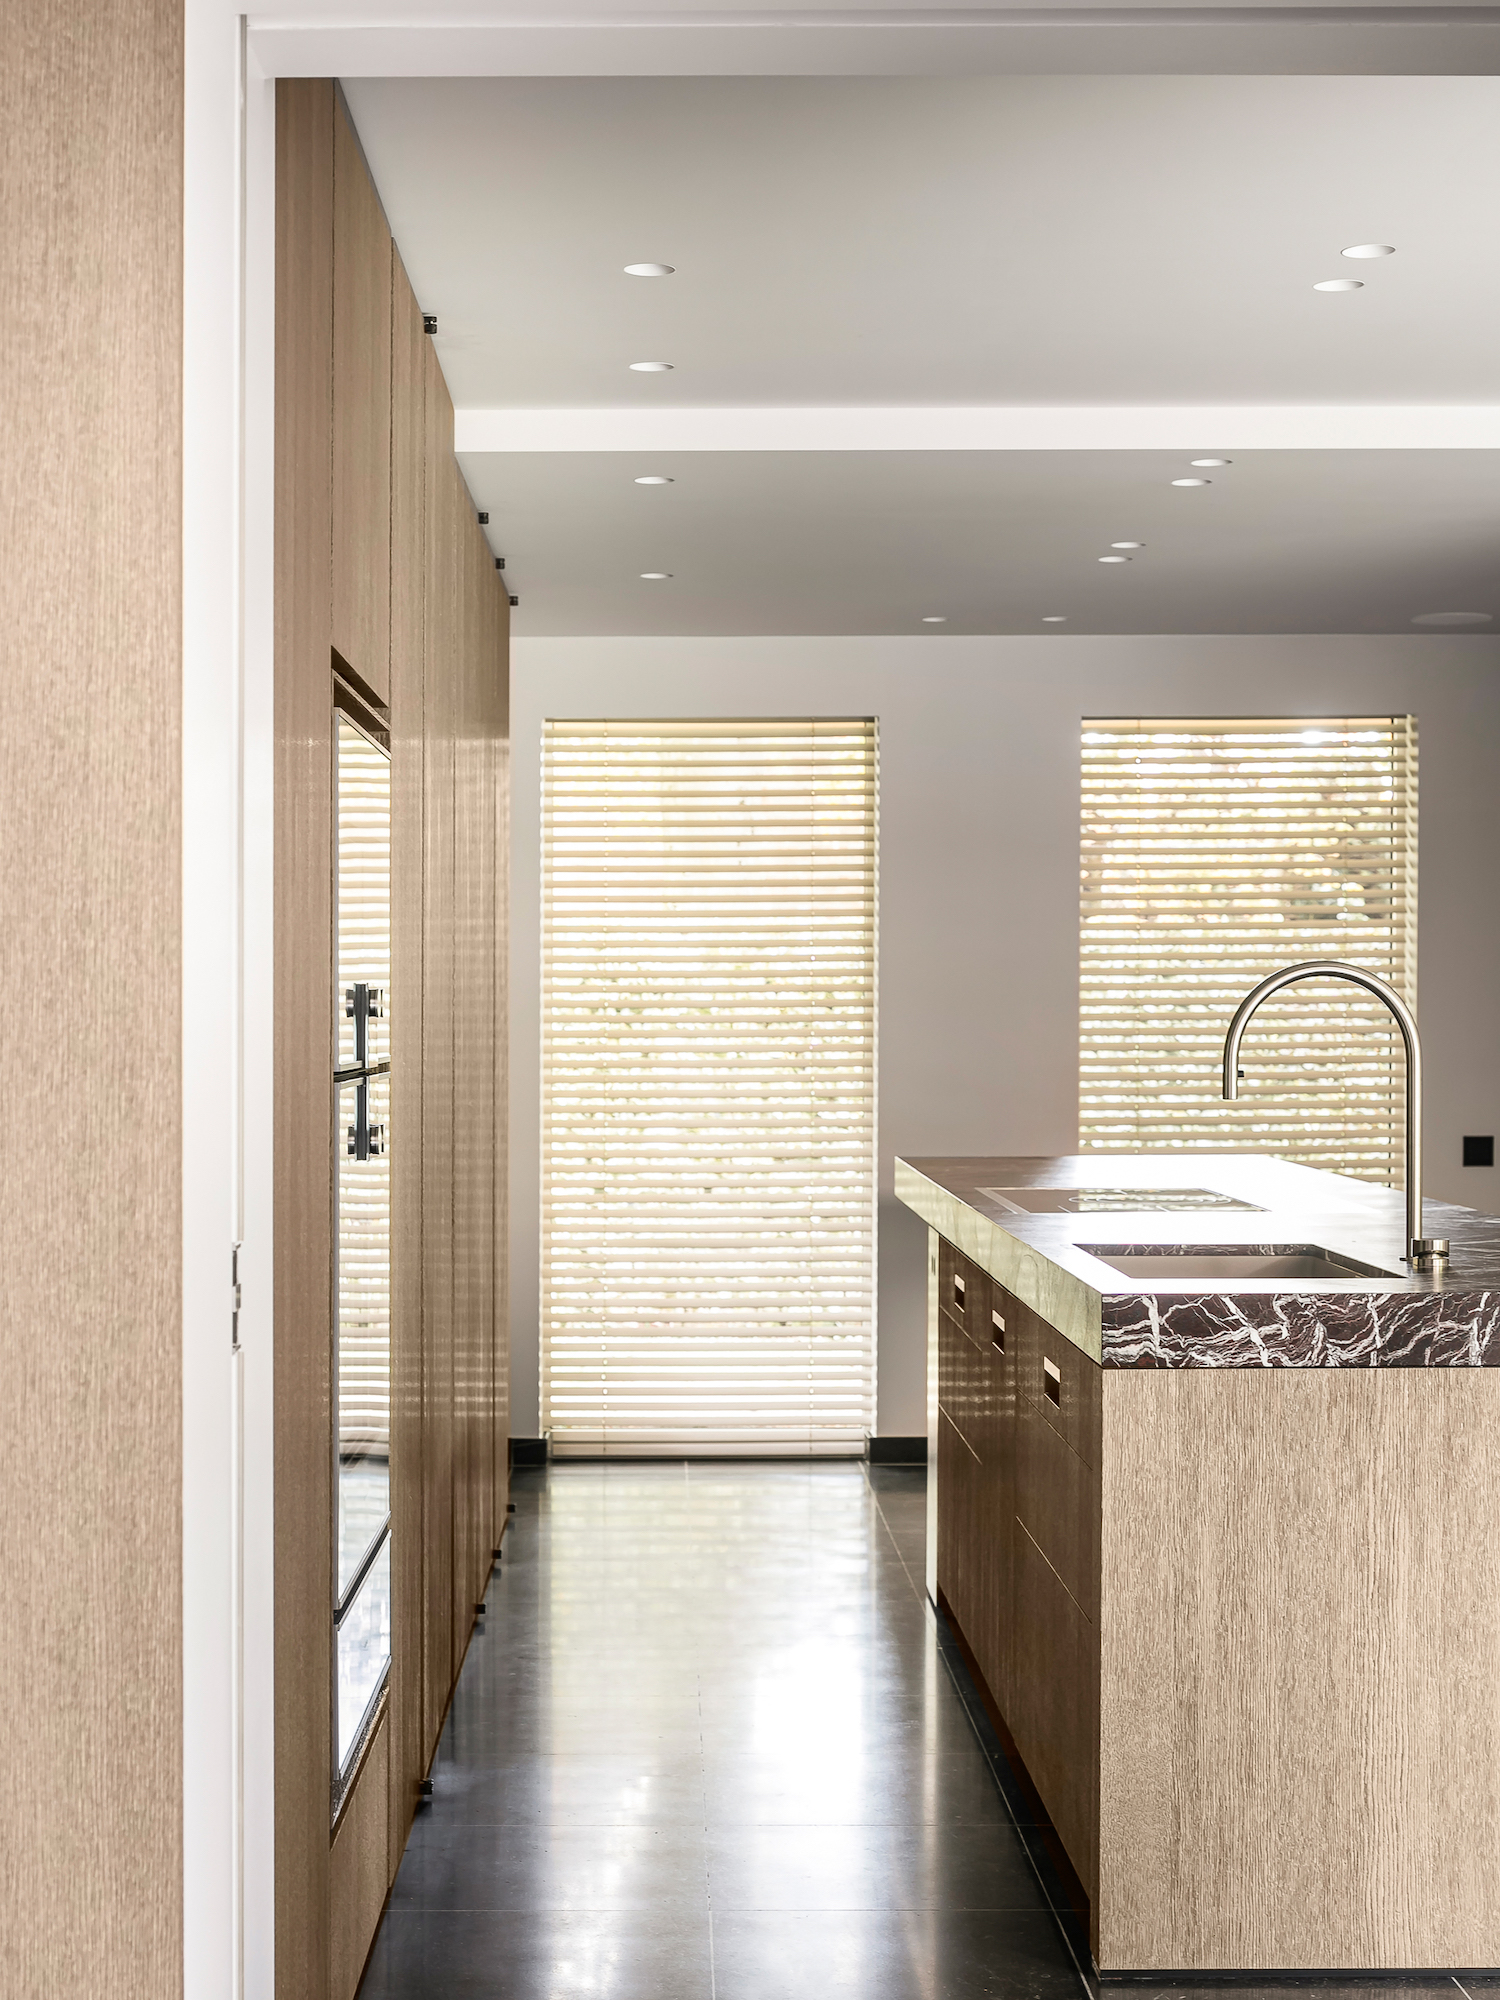 est living dejaegher interieur architecten belgian kitchens 2